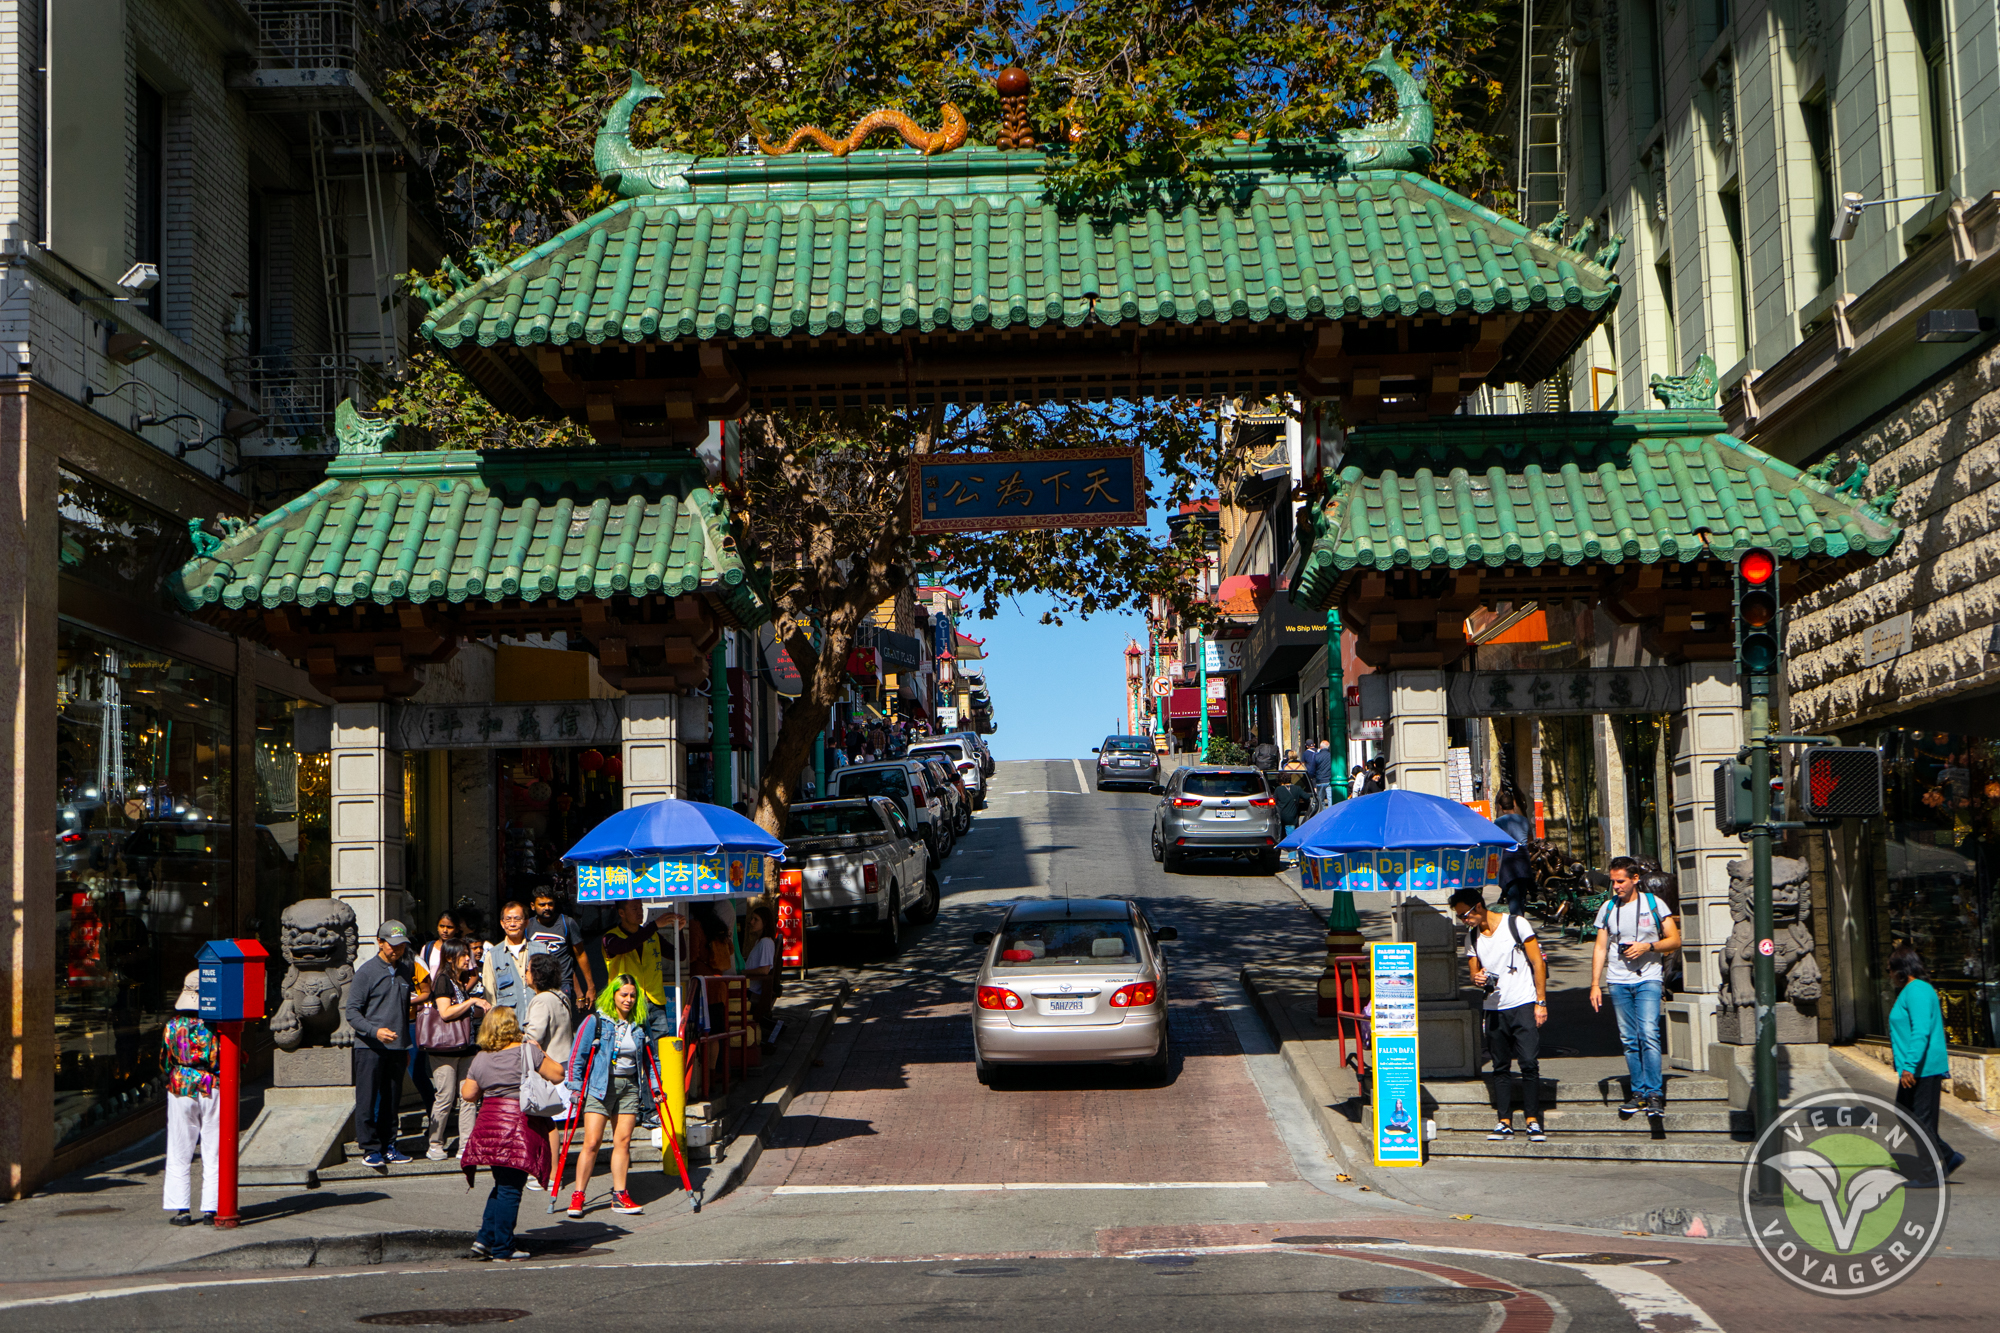 San Francisco Travel Guide | Dragon Gate